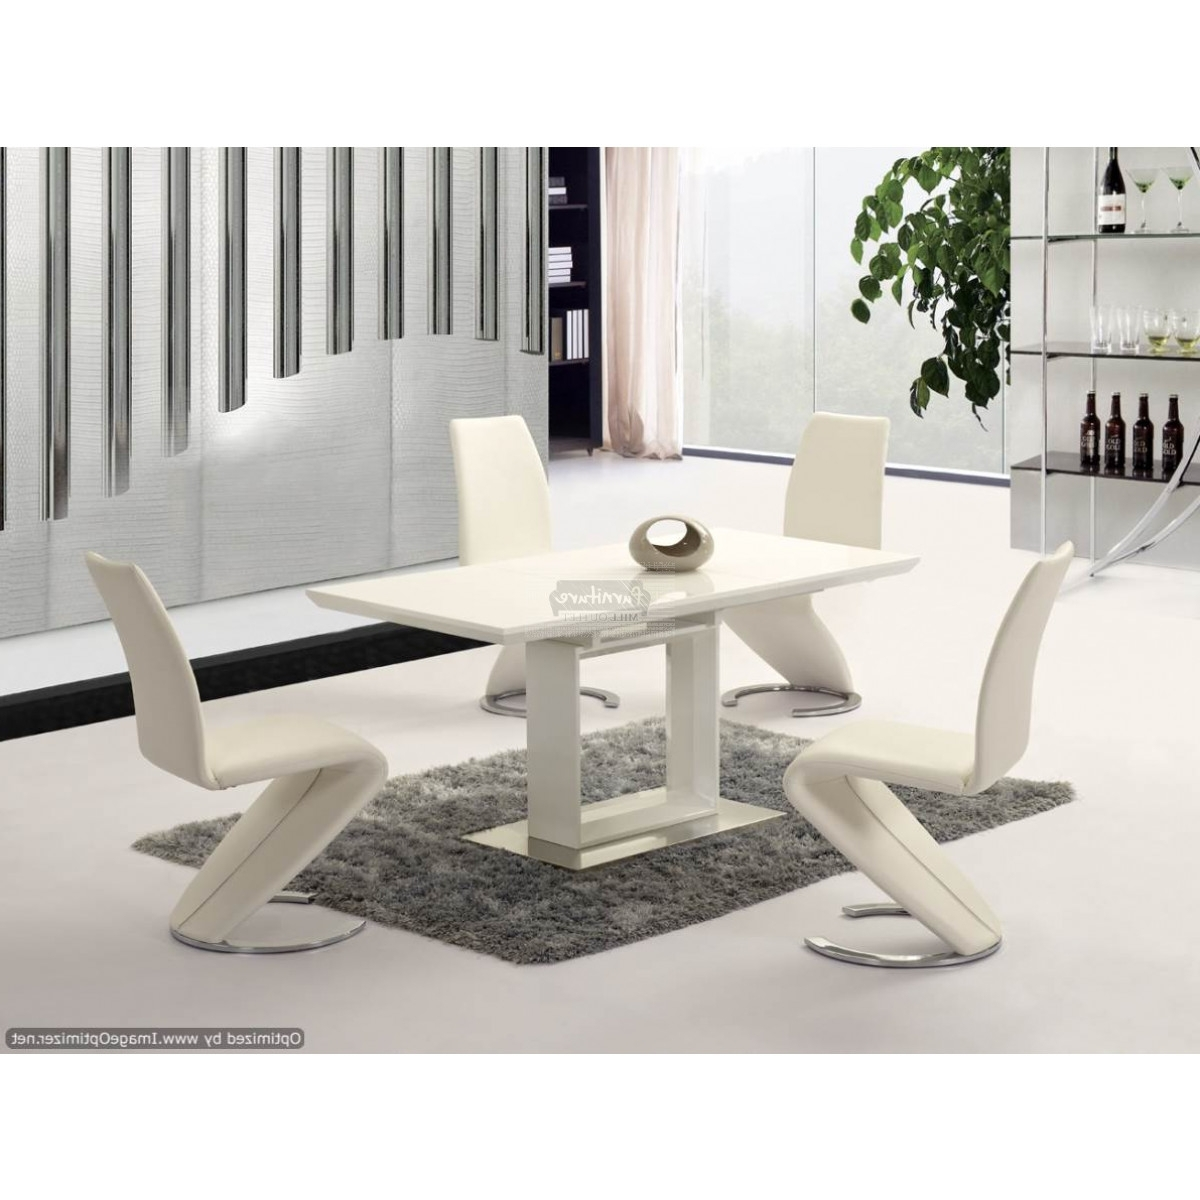 White Gloss Dining Sets For Popular Space White High Gloss Extending Dining Table – 120Cm To 160Cm (View 16 of 25)